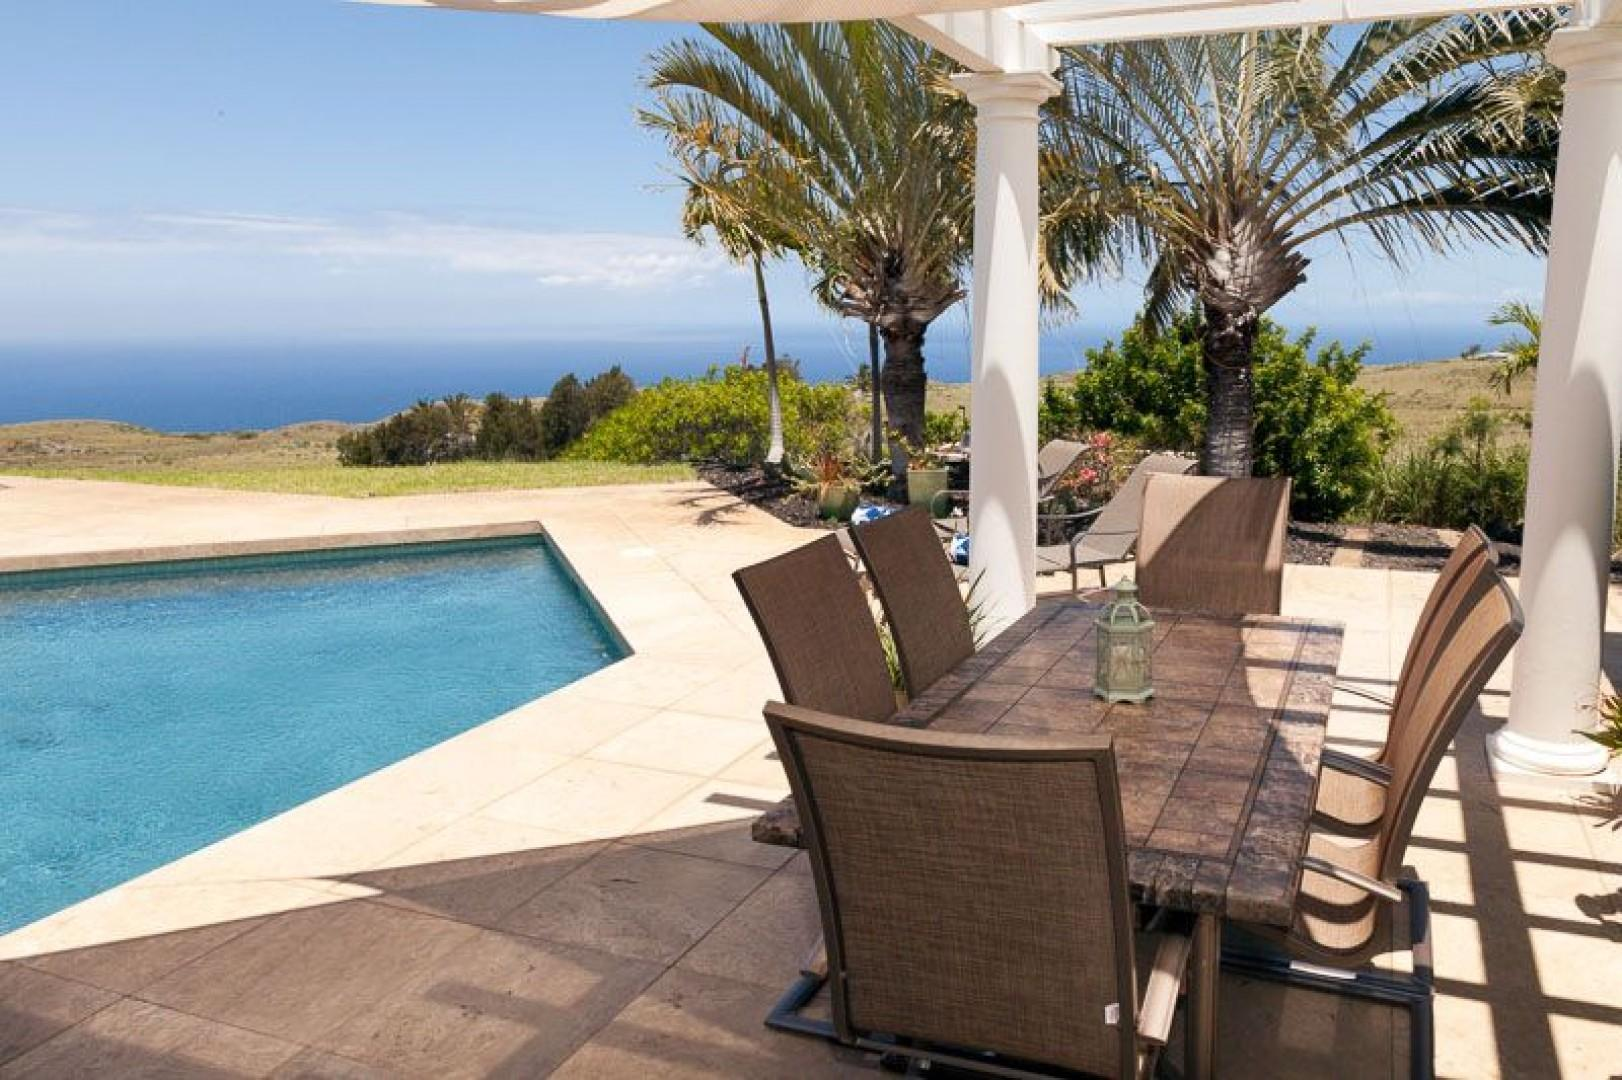 Oceanview covered outdoor alfresco dining for 6